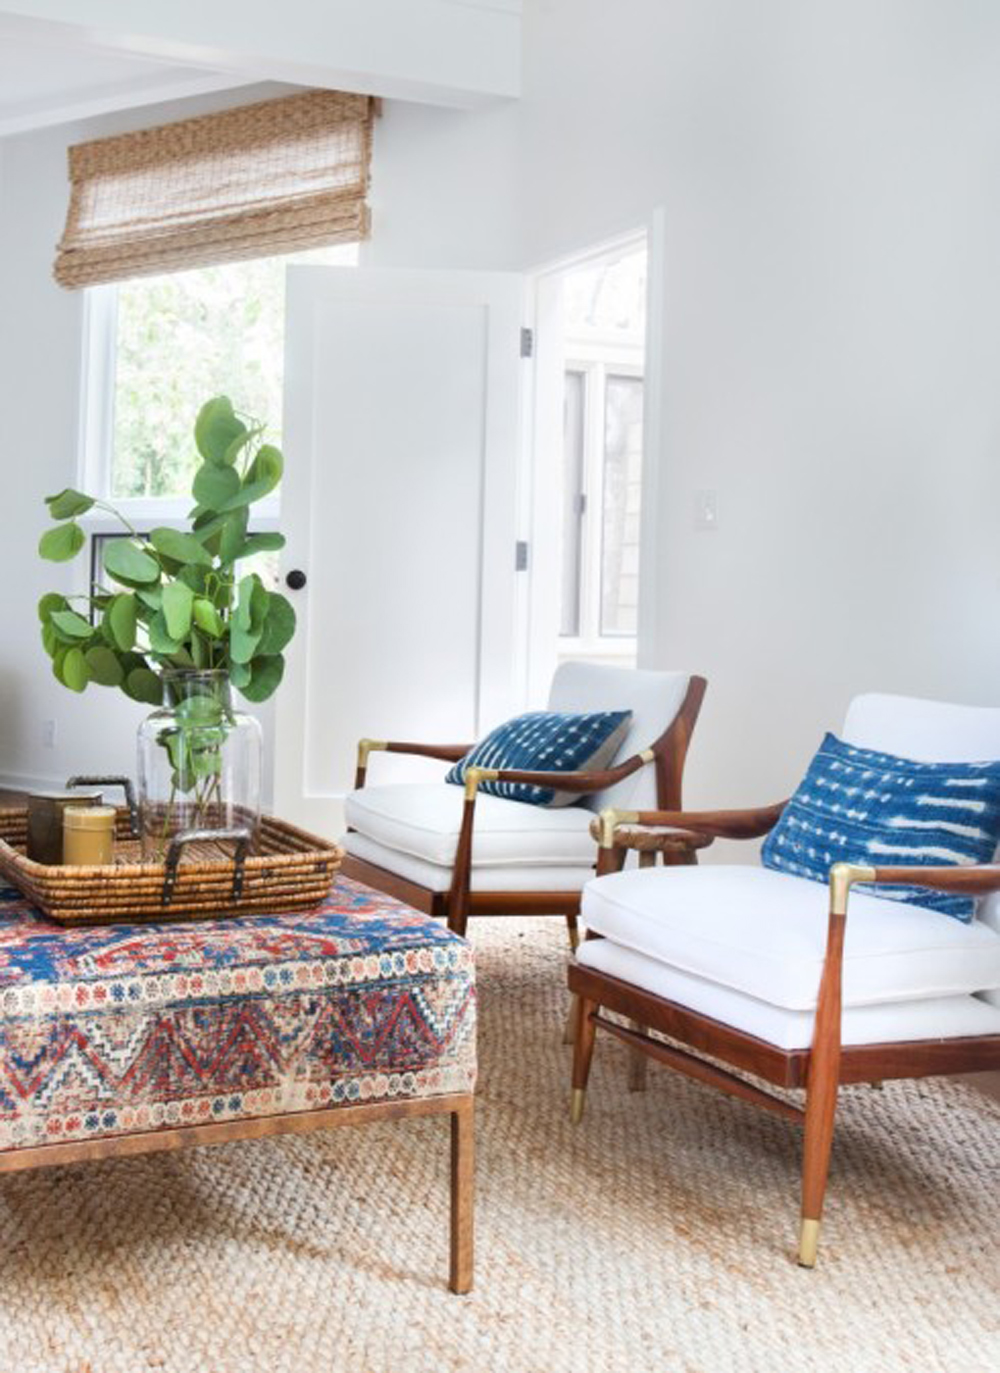 JUTE RUG LAYERING Featured By Popular Home Interior Design, E. INTERIORS